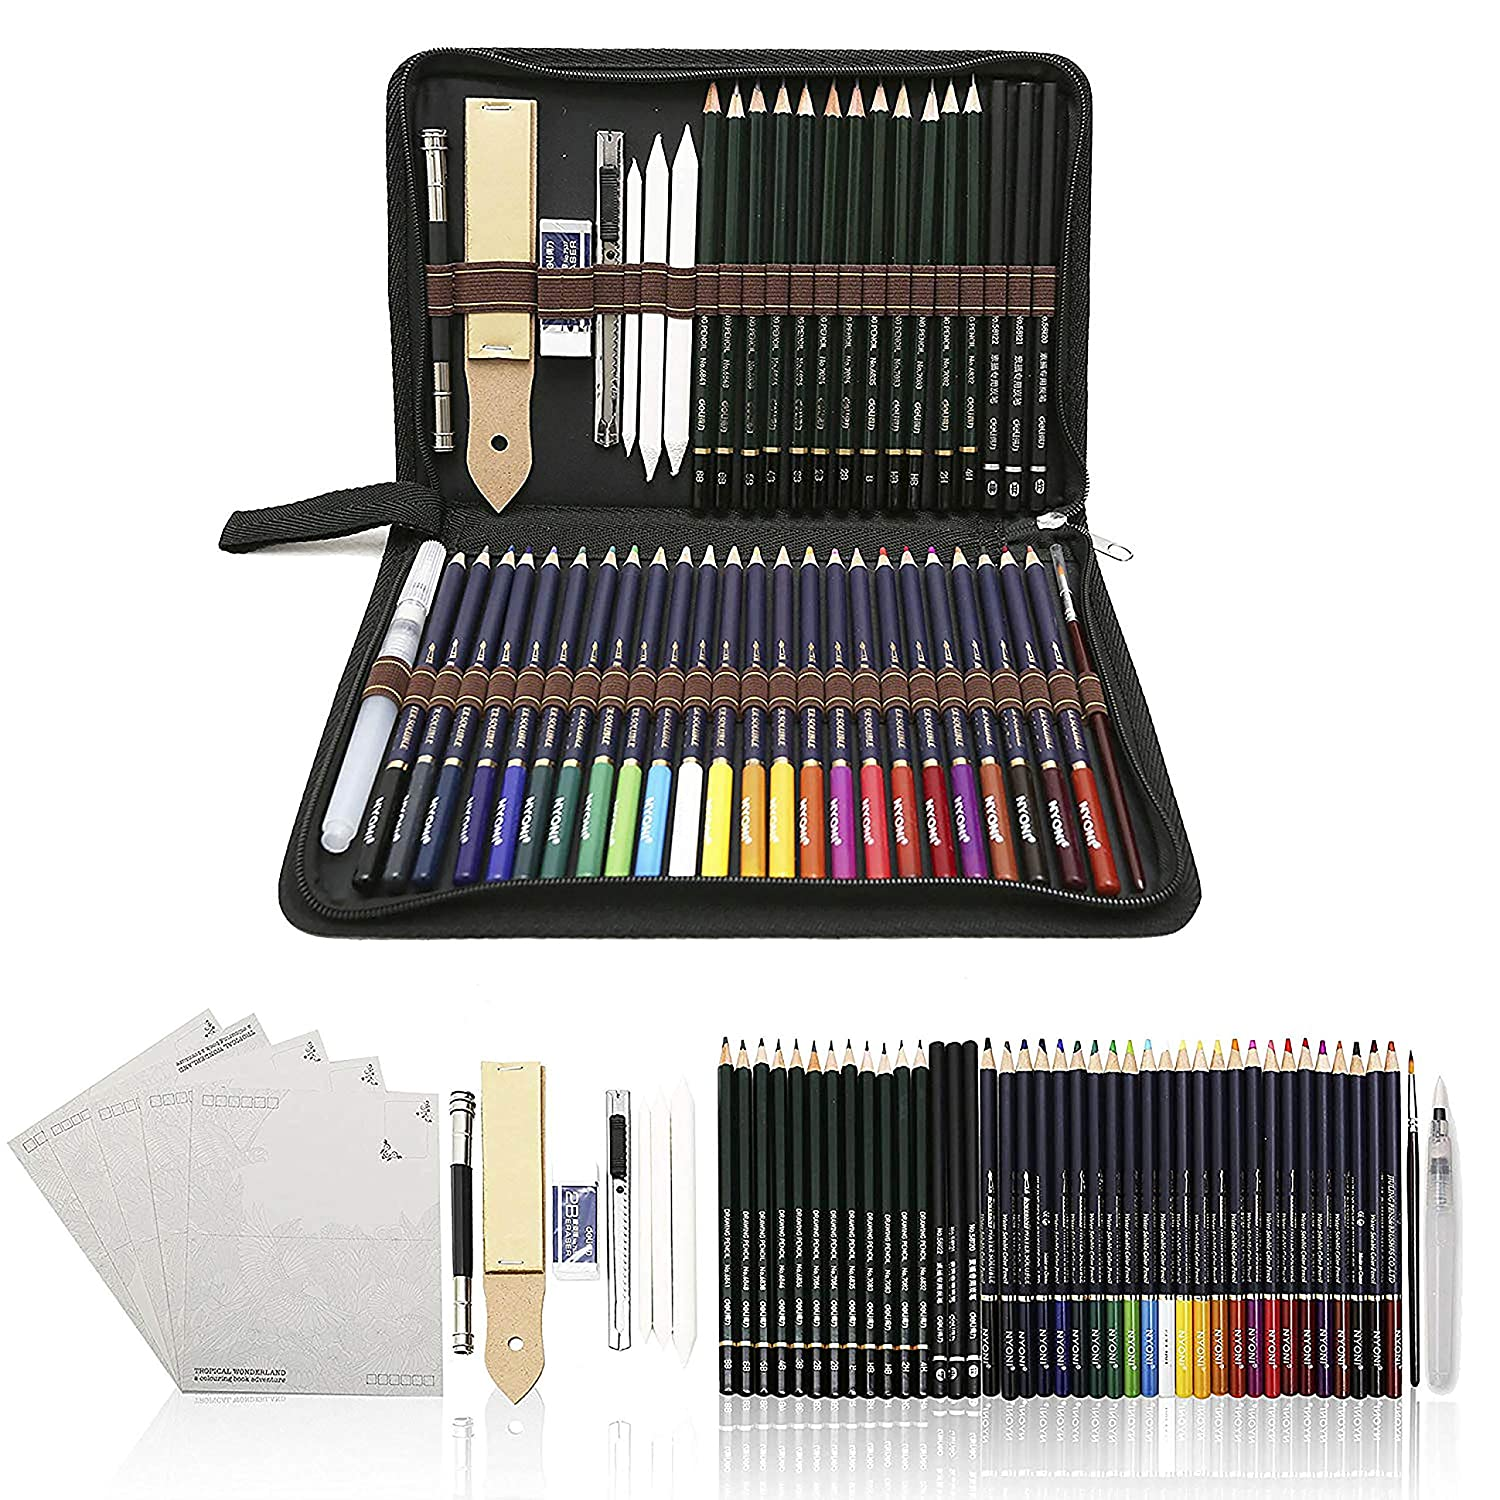 54PCS Art Colouring Pencils,Watercolour Drawing Pencils Set, Sketch Pencils with Drawing Tool In Personalized Large Pencil Case,Best Gift For Students & Artists Zzone